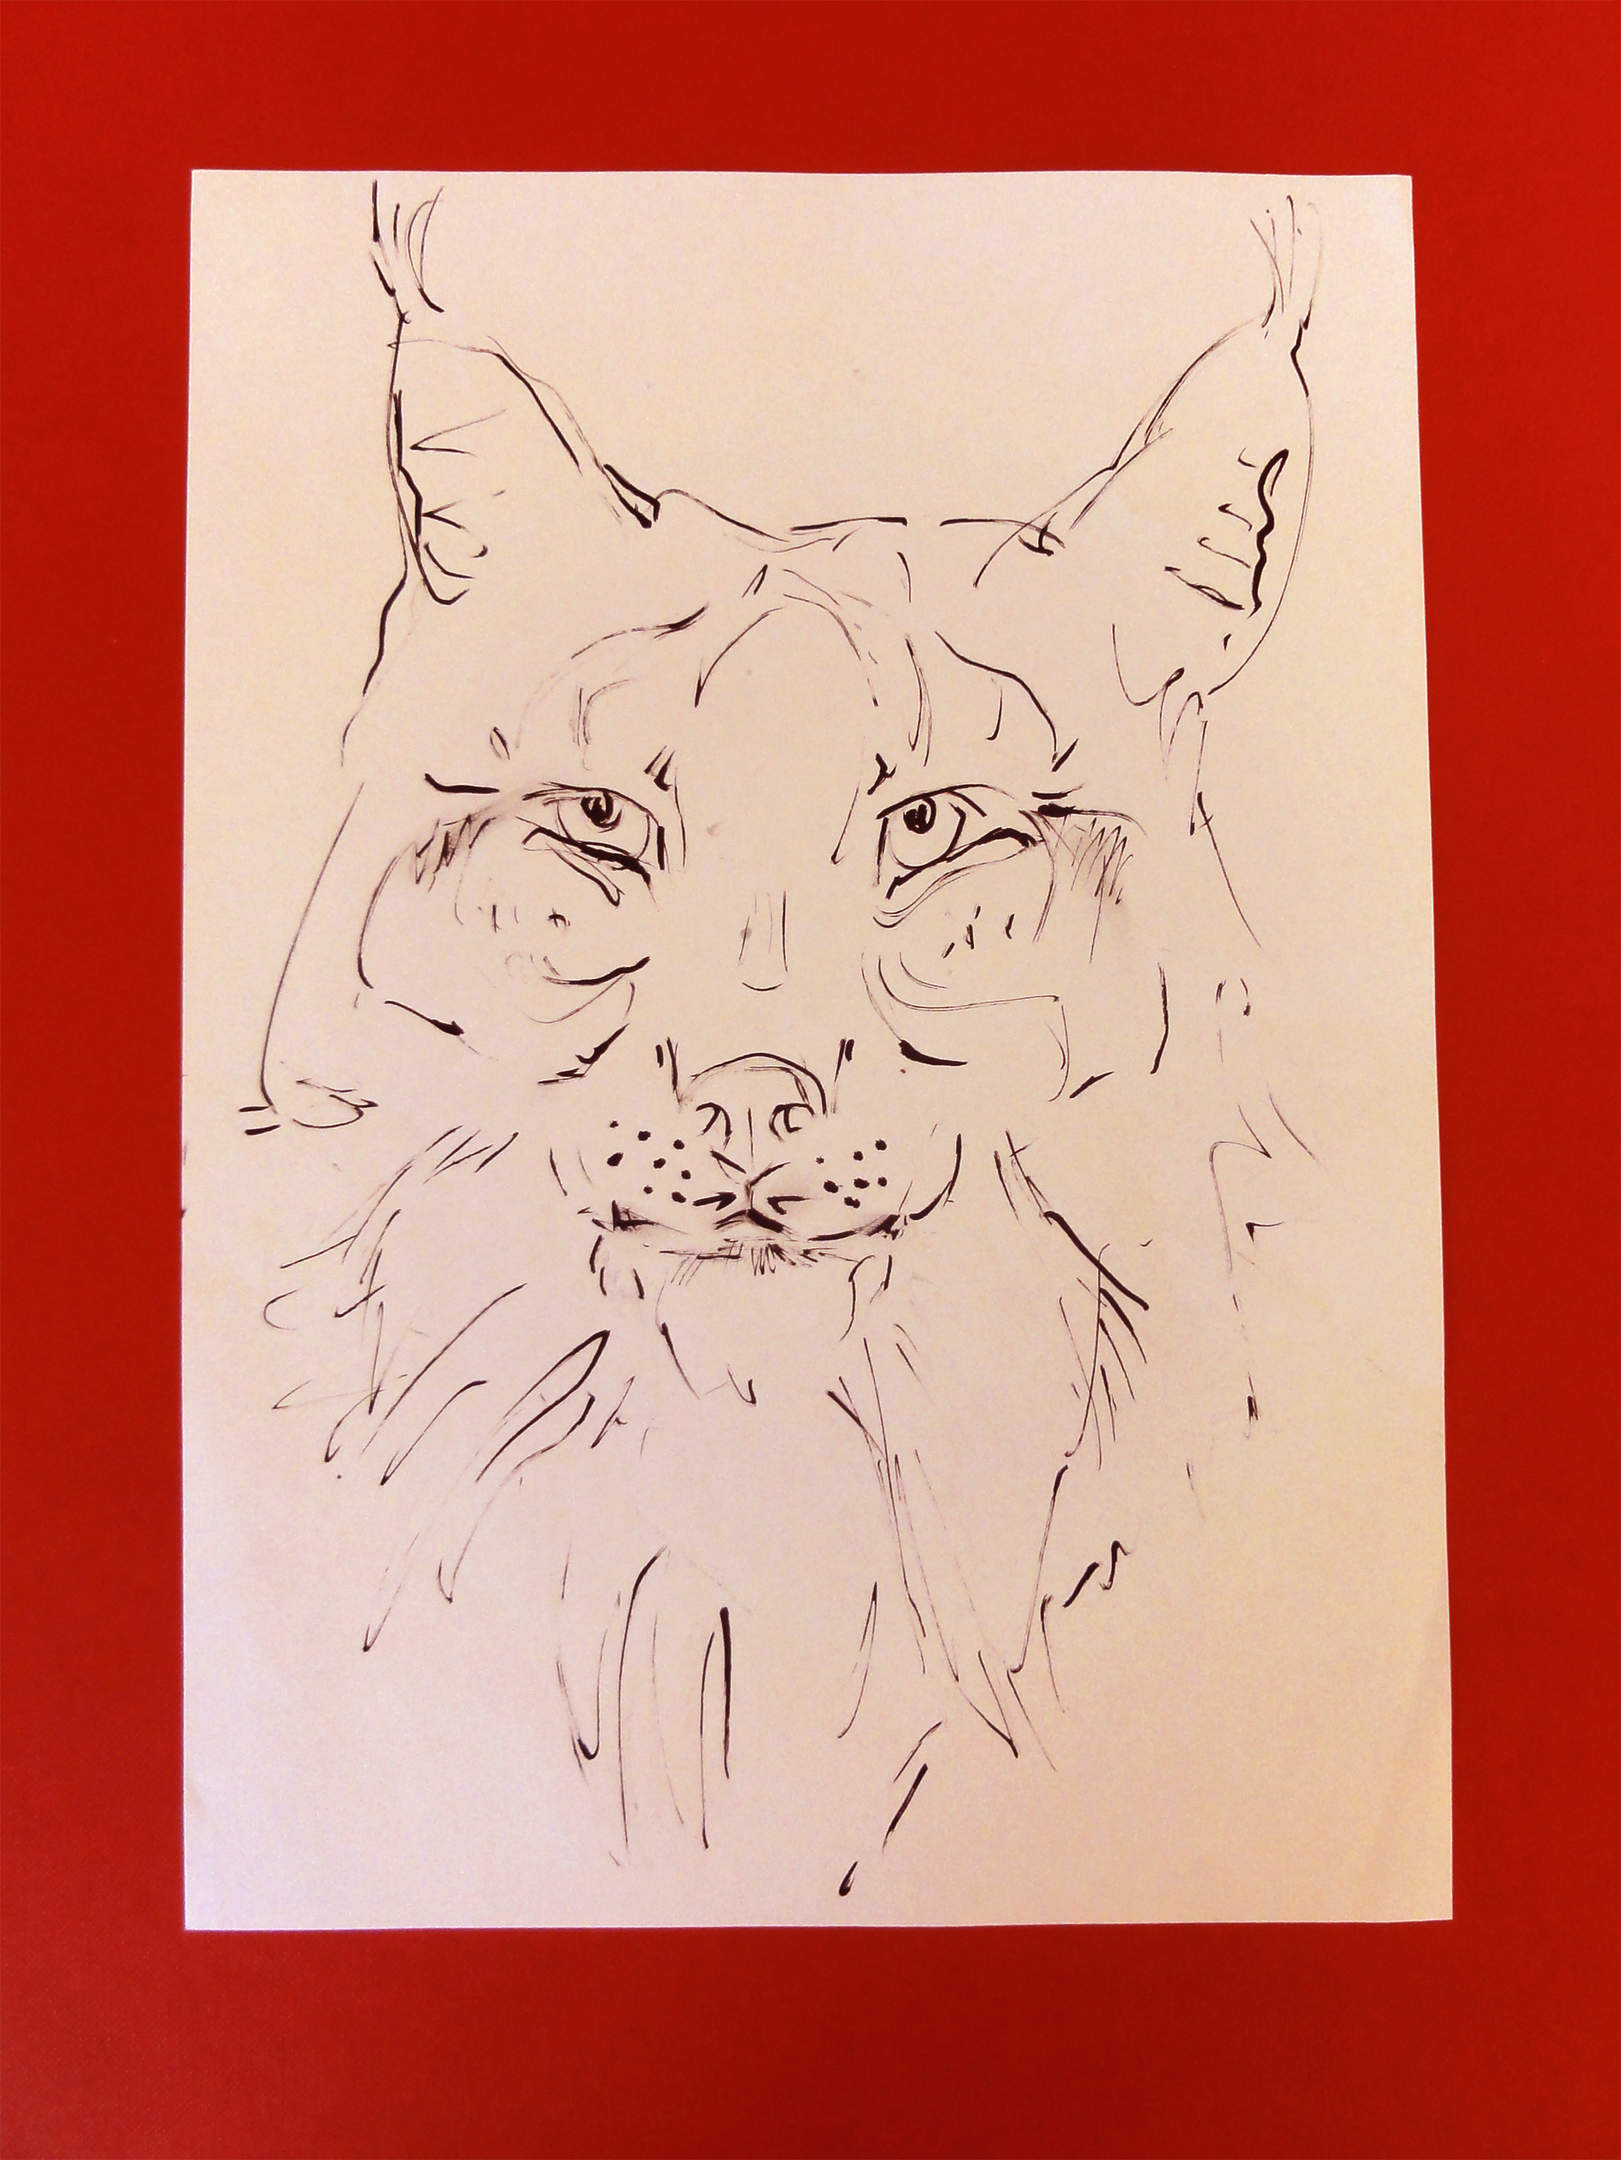 Lot No. 4: Video Oner, Untitled (lynx)